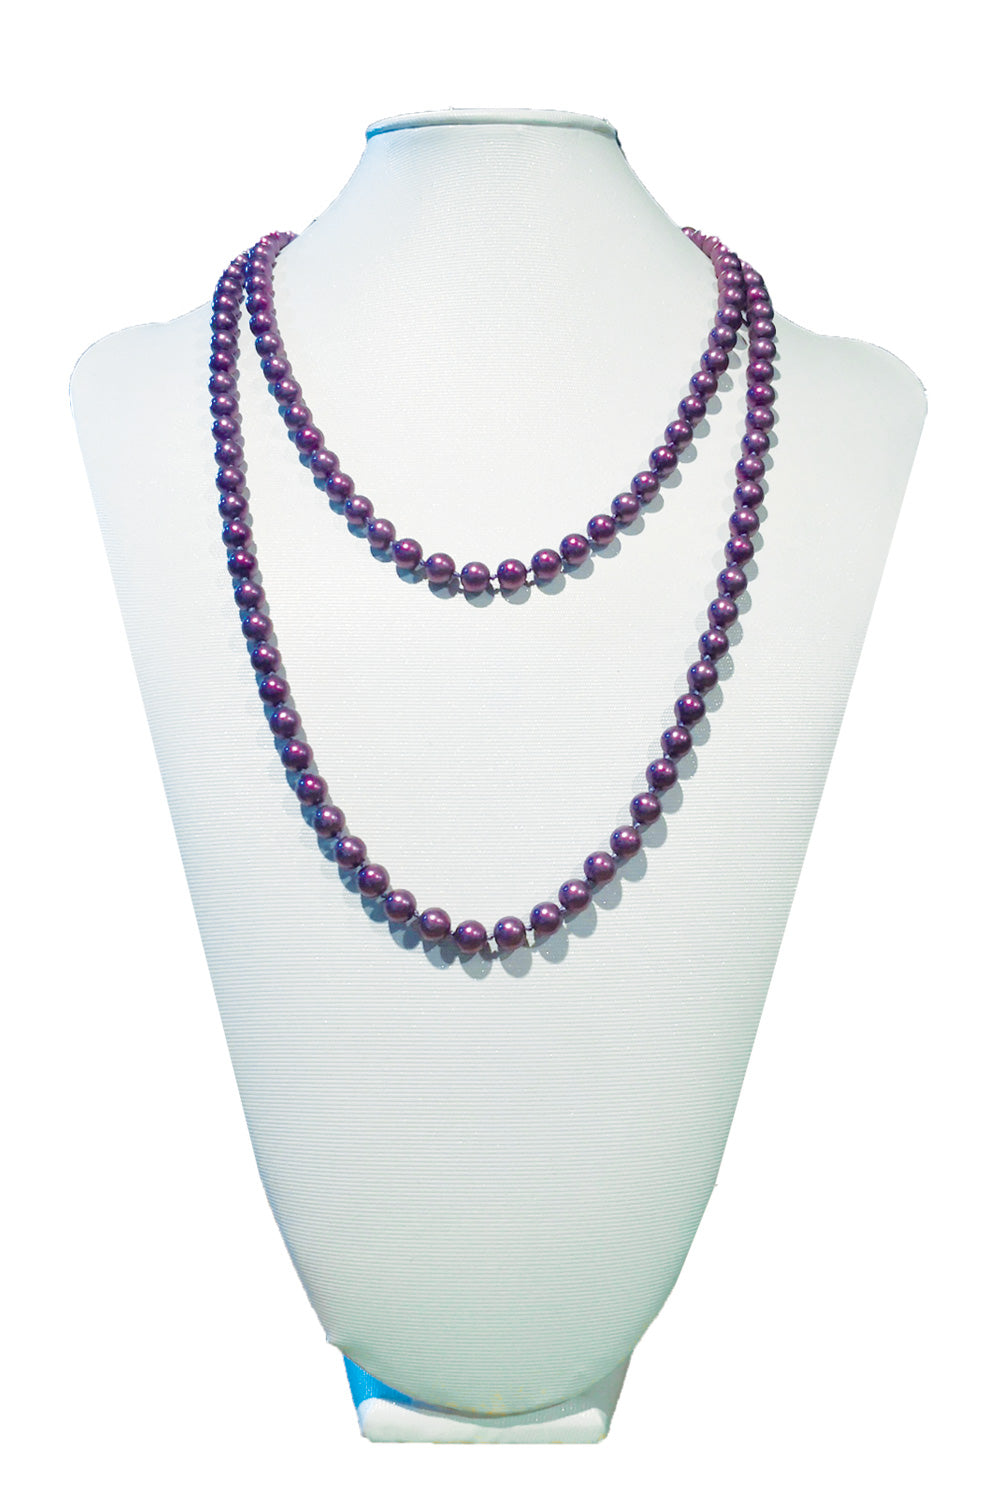 Purple Matte Costume Pearl Necklace | Annah Stretton | Designer Accessories